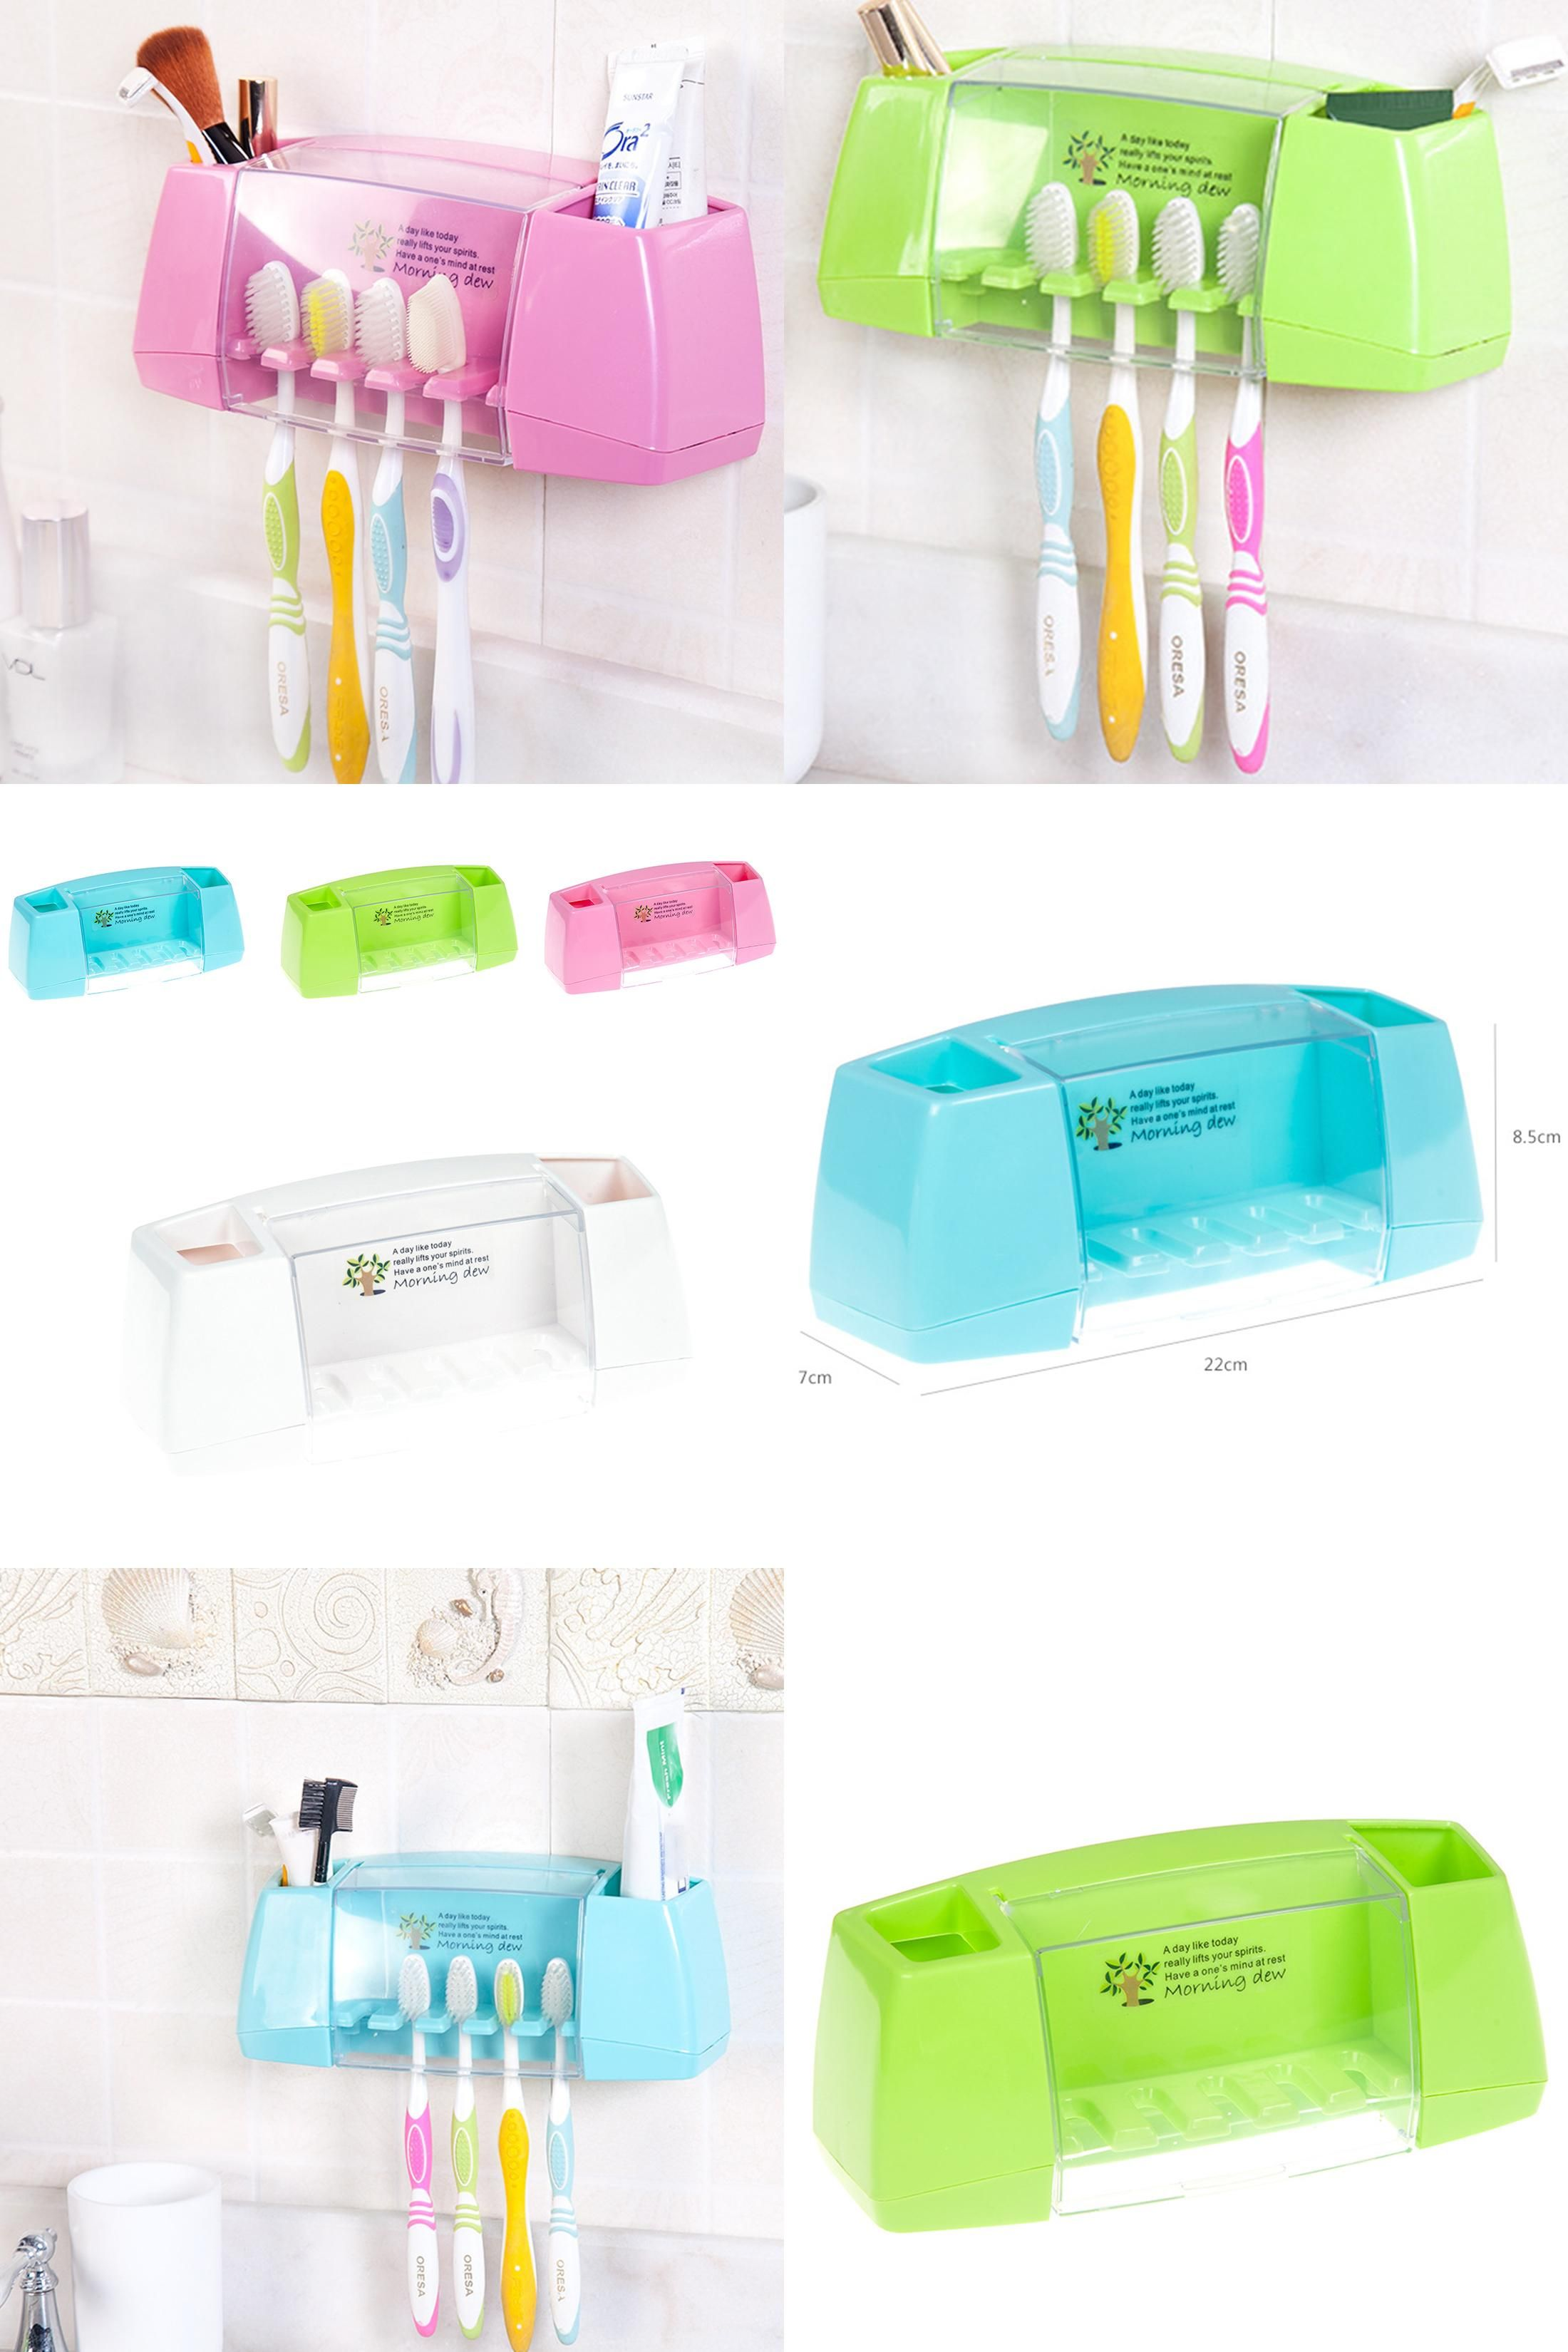 Bathroom Accessories Holder visit to buy] 2016 wholesale multifunctional toothbrush holder